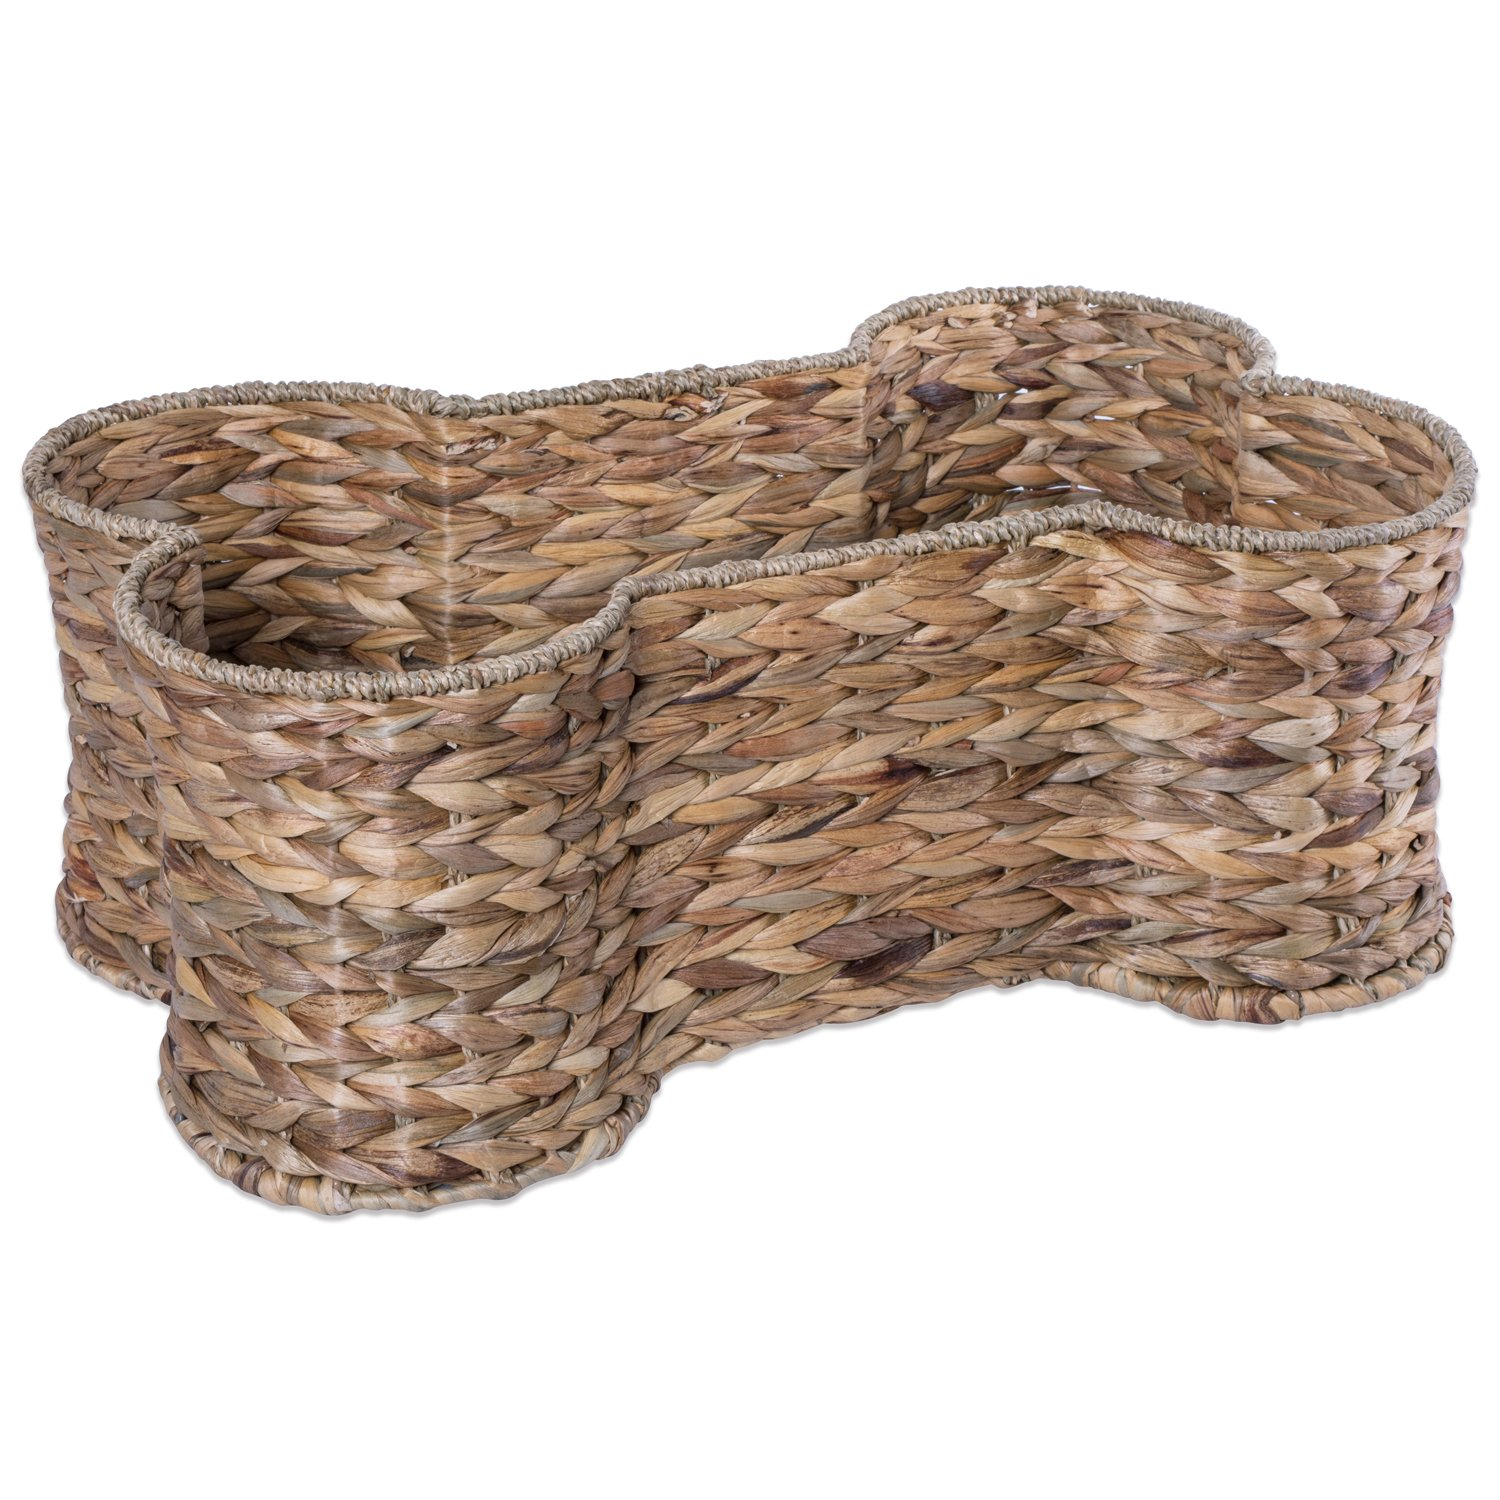 Bone Dry DII Large Hyacinth Bone Shape Storage Basket, 24x15x9, Pet Organizer Bin for Home Décor, Pet Toy, Blankets, Leashes and Food by Bone Dry